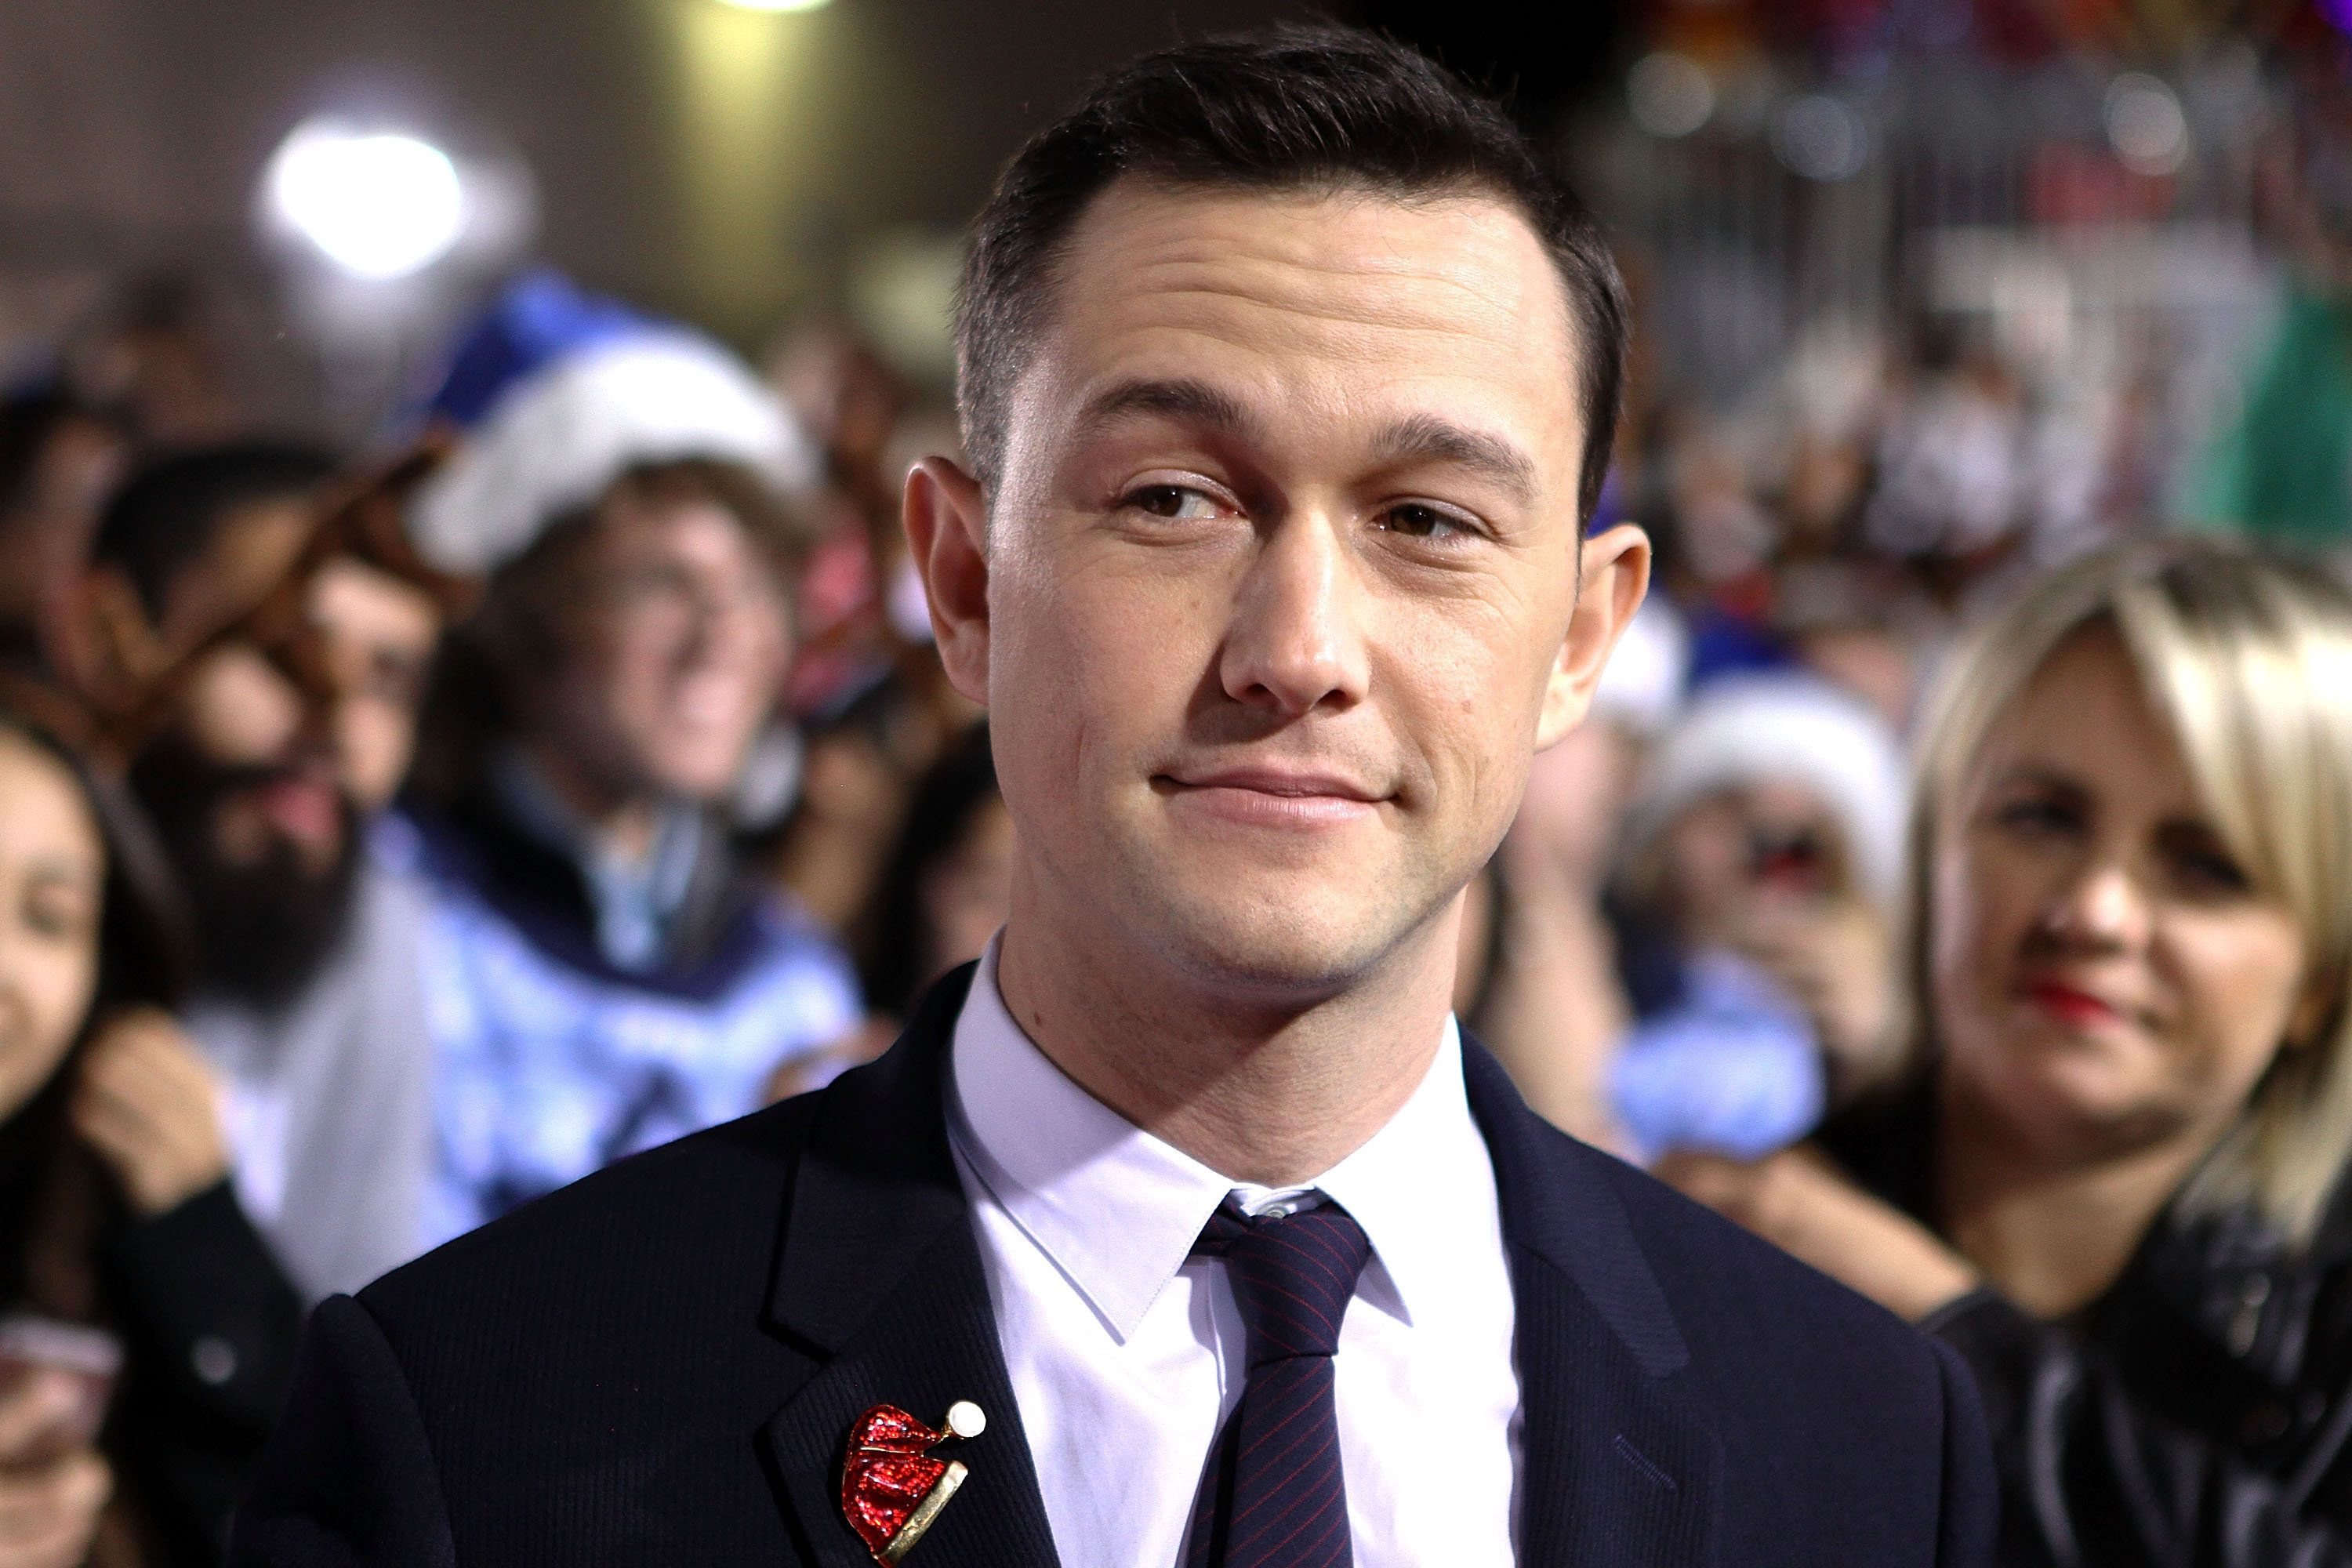 LOS ANGELES, CA - NOVEMBER 18:  Actor Joseph Gordon-Levitt arrives to the premiere of 'The Night Before' at The Theatre At The Ace Hotel on November 18, 2015 in Los Angeles, California.  (Photo by Randy Shropshire/Getty Images)